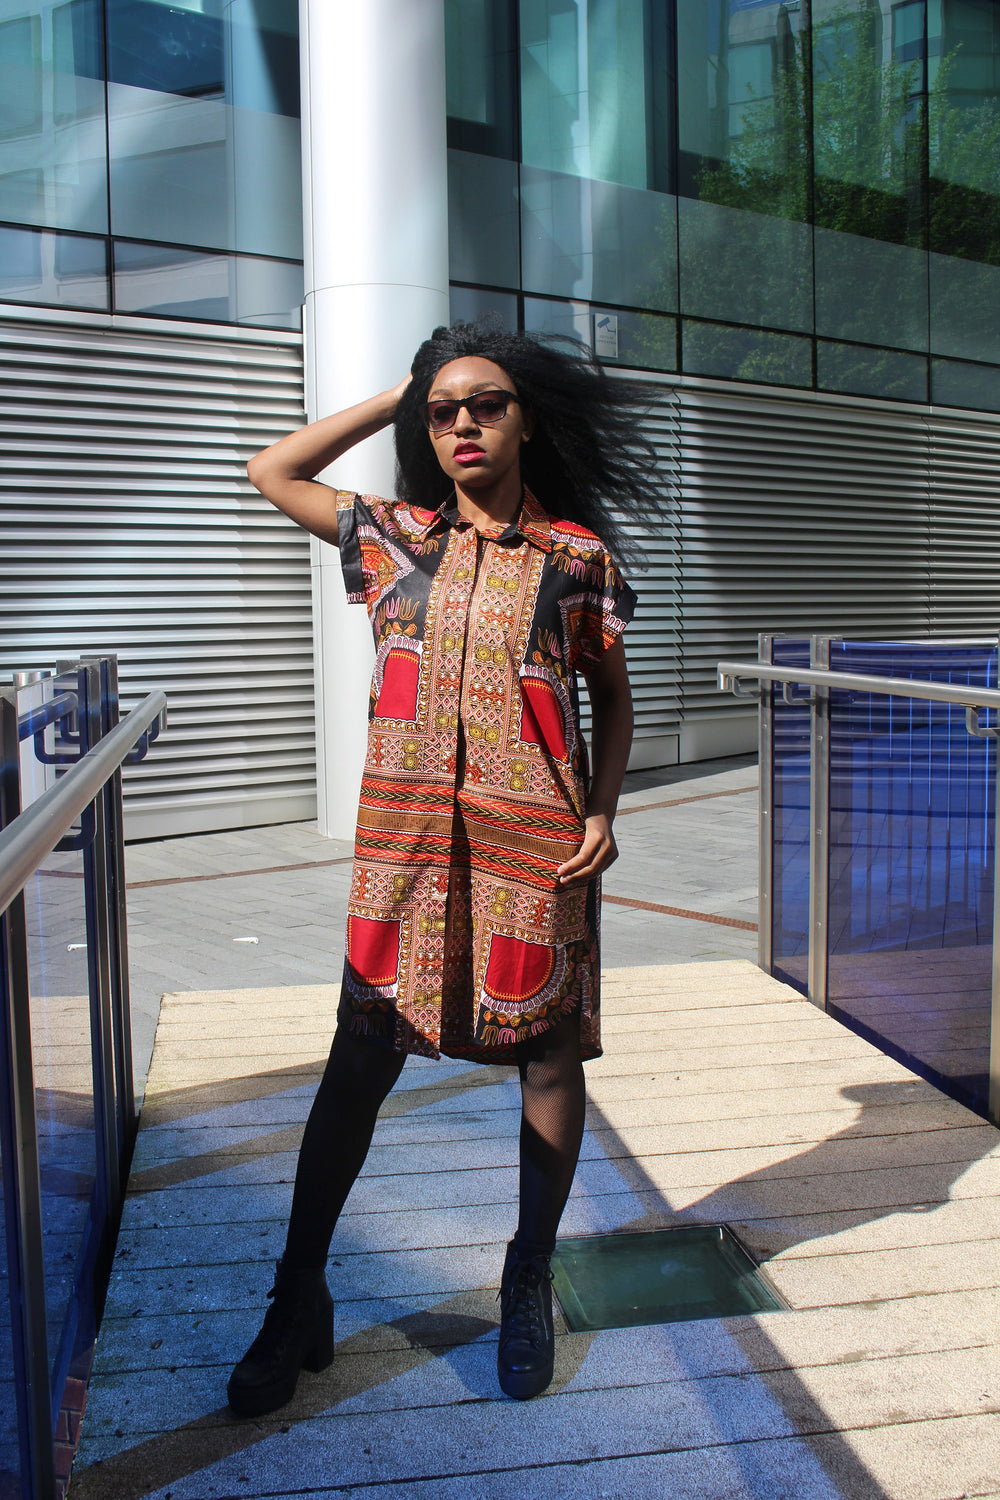 Aztec Dress, African Shirt Dress in Black Dashiki Print - Festival Dress - Continent Clothing